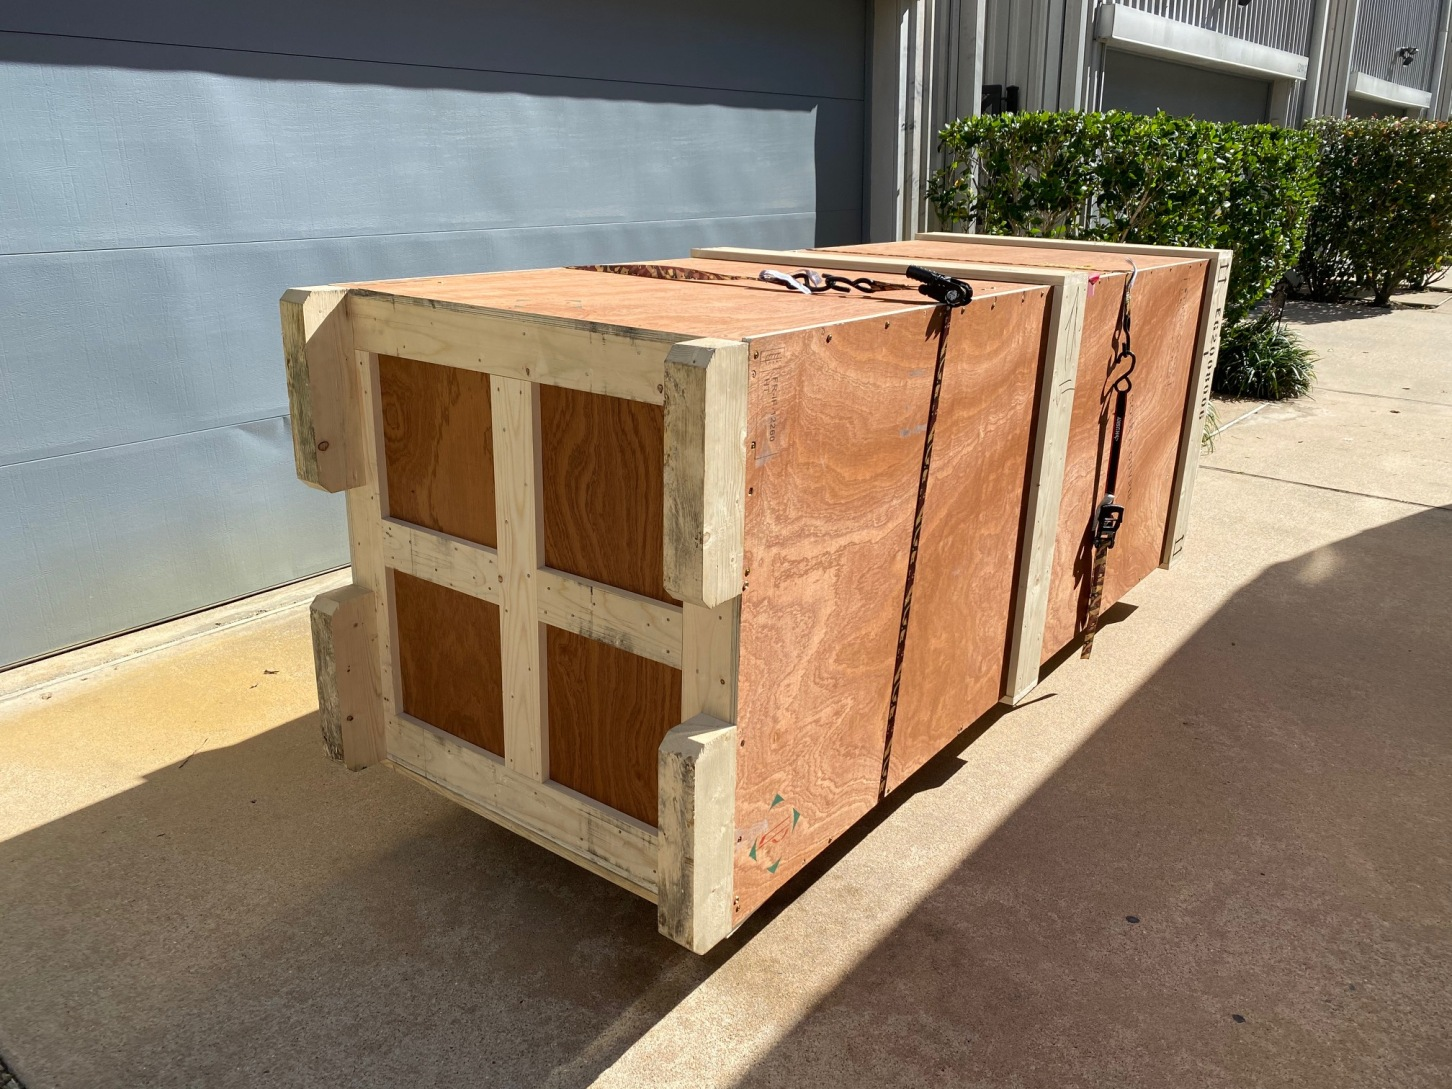 Fine Art Shippers Specializes in Delivering Oversized Works of Art